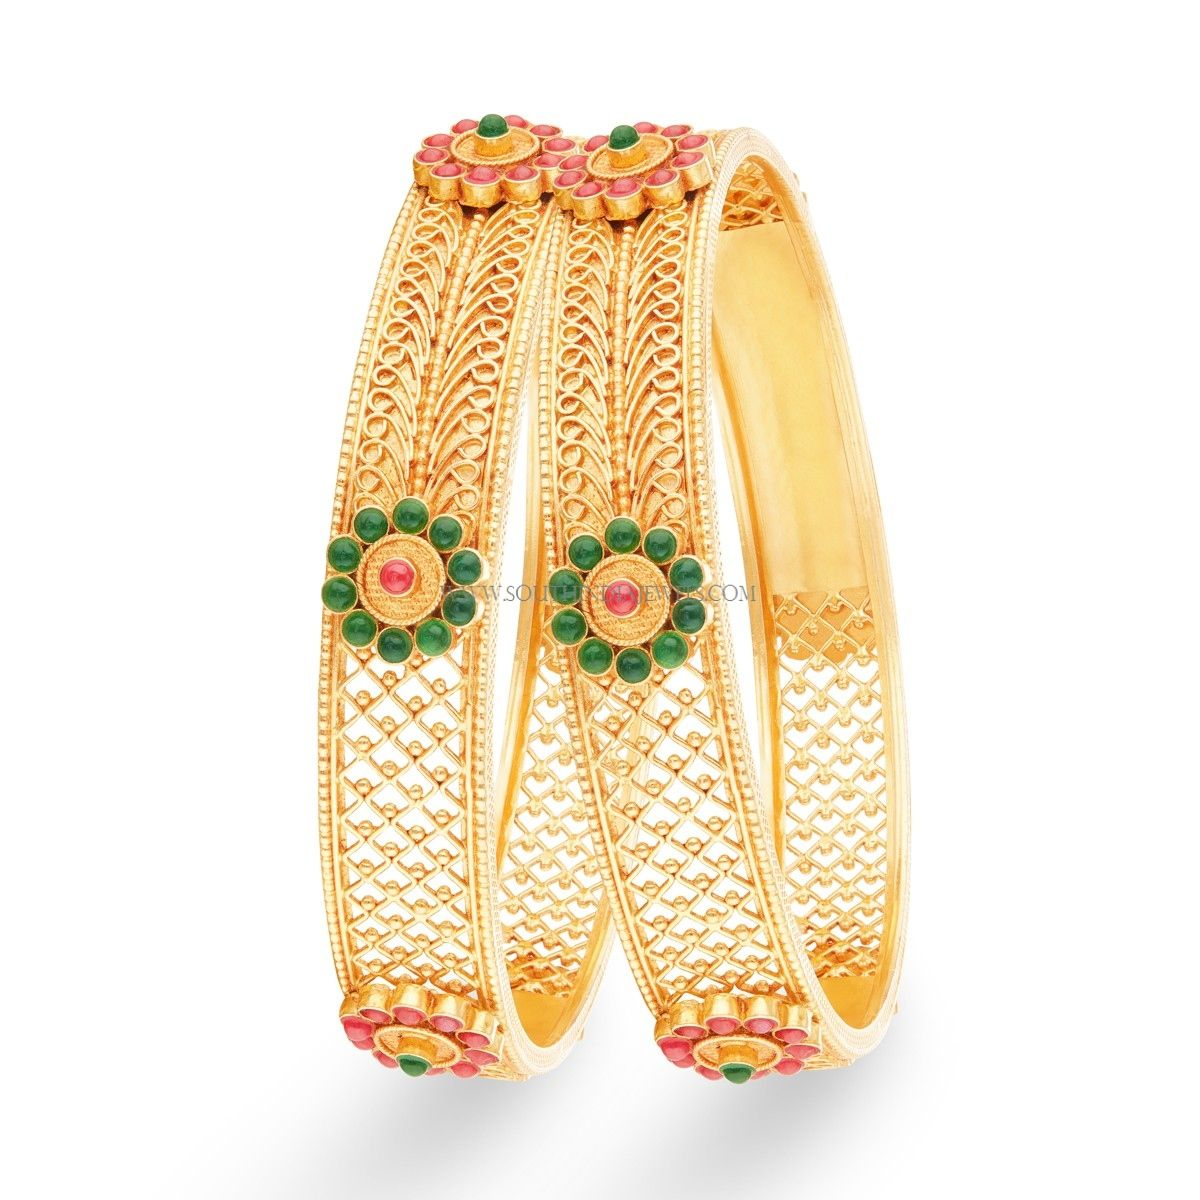 gold bangle kangan designs with price and weight i 89478